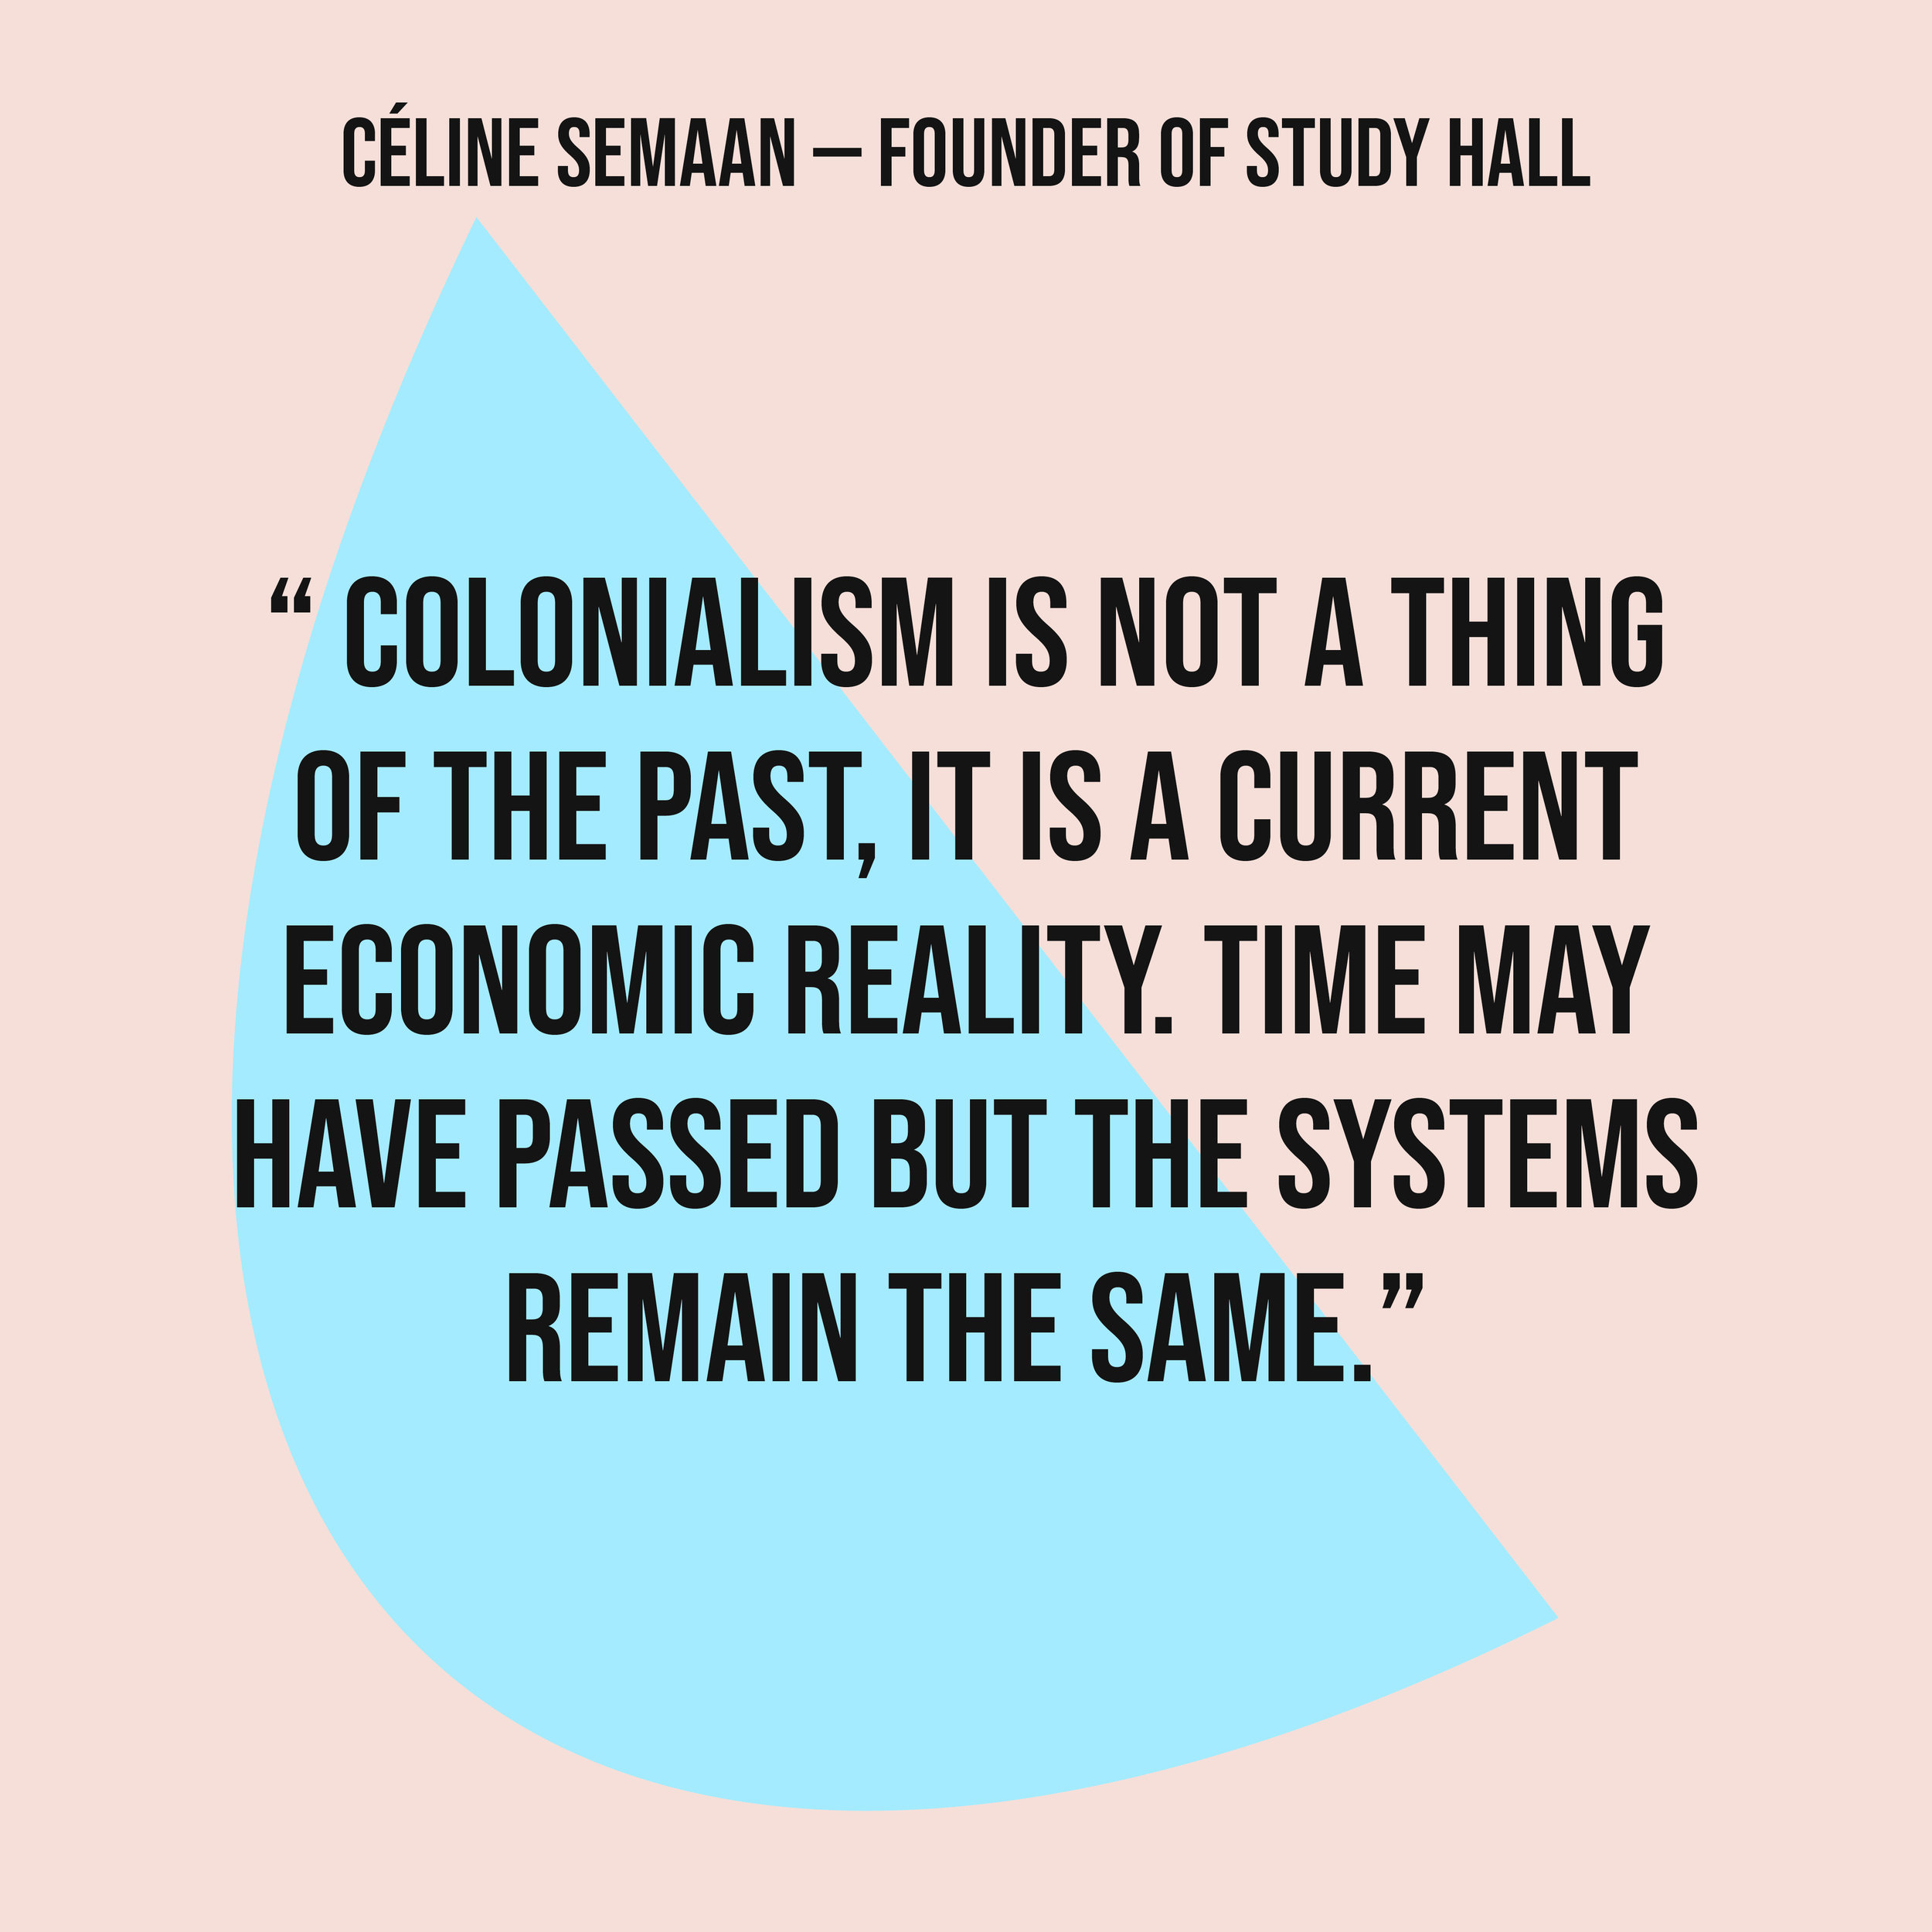 Quote from Céline Semaan, founder of Slow Factory at Study Hall London